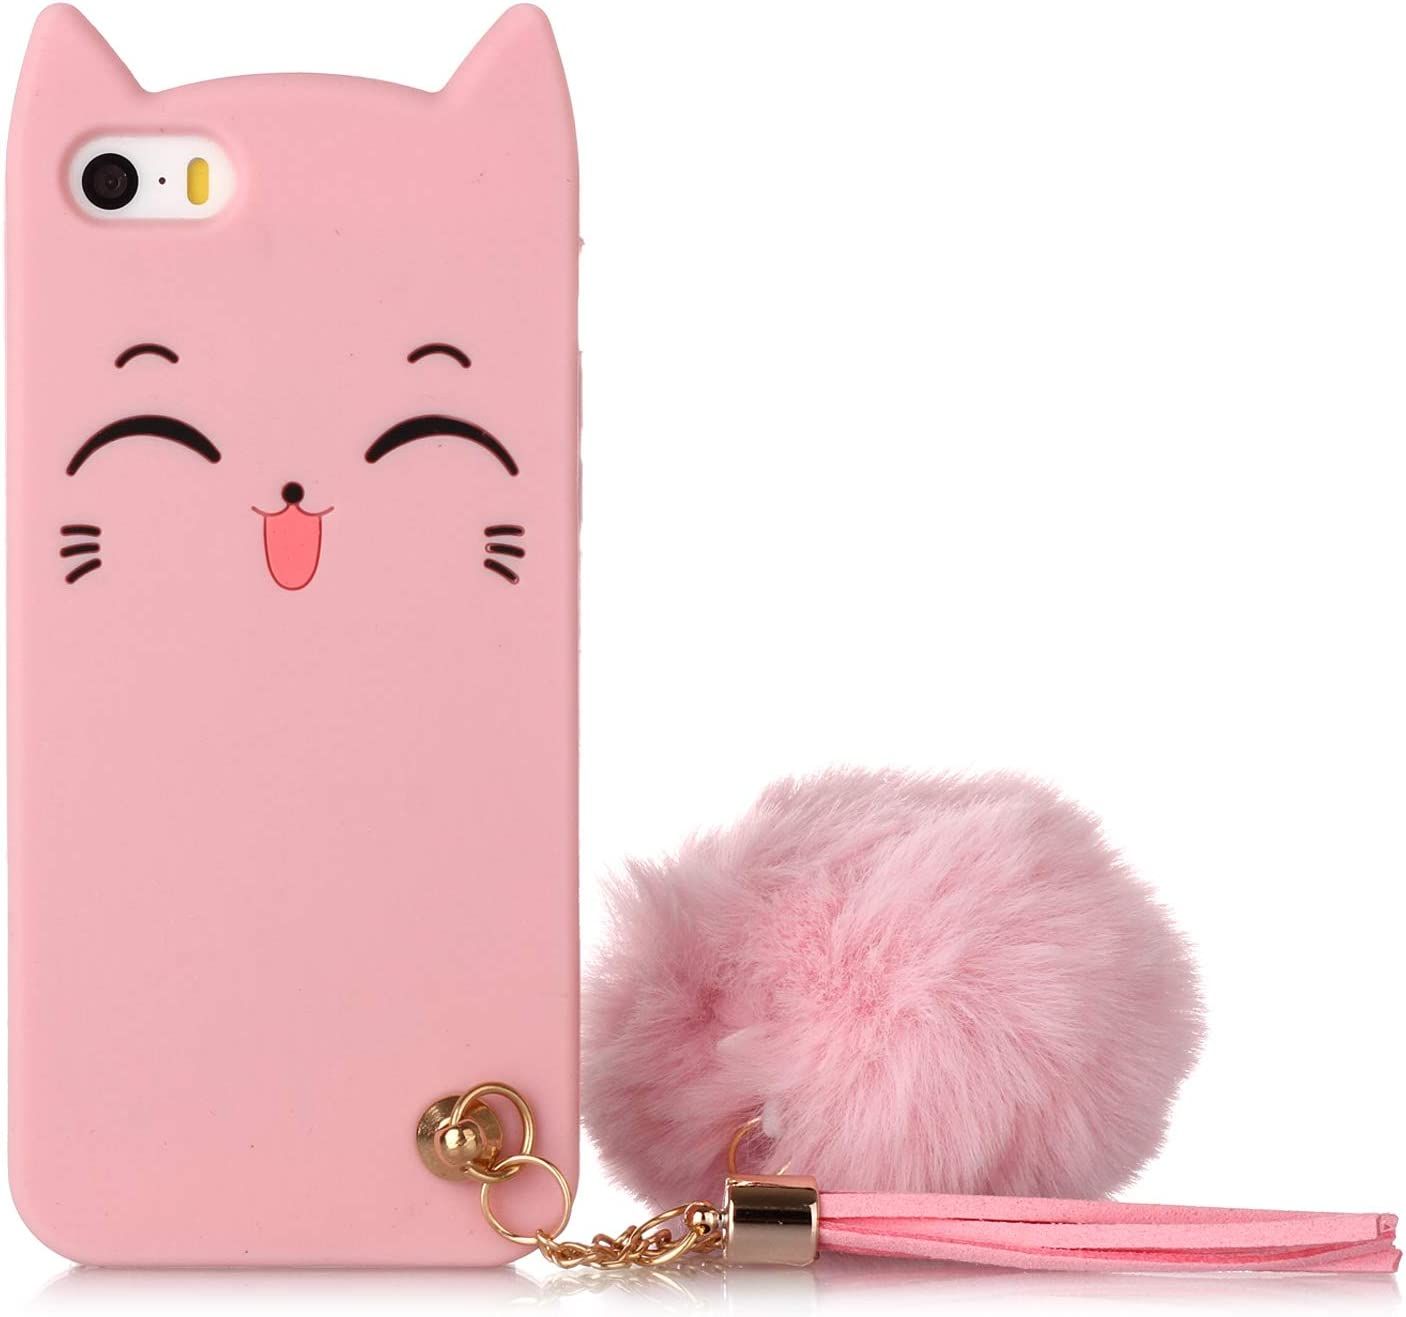 iPhone 5S Cat Case, iPhone SE Silicone Case, Fashion Cute 3D Pink Meow Party Cat Kitty Kids Girls Lady Protective Cases with Pompom/Strap Soft Case Skin for Apple iPhone 5/5s iPhone SE